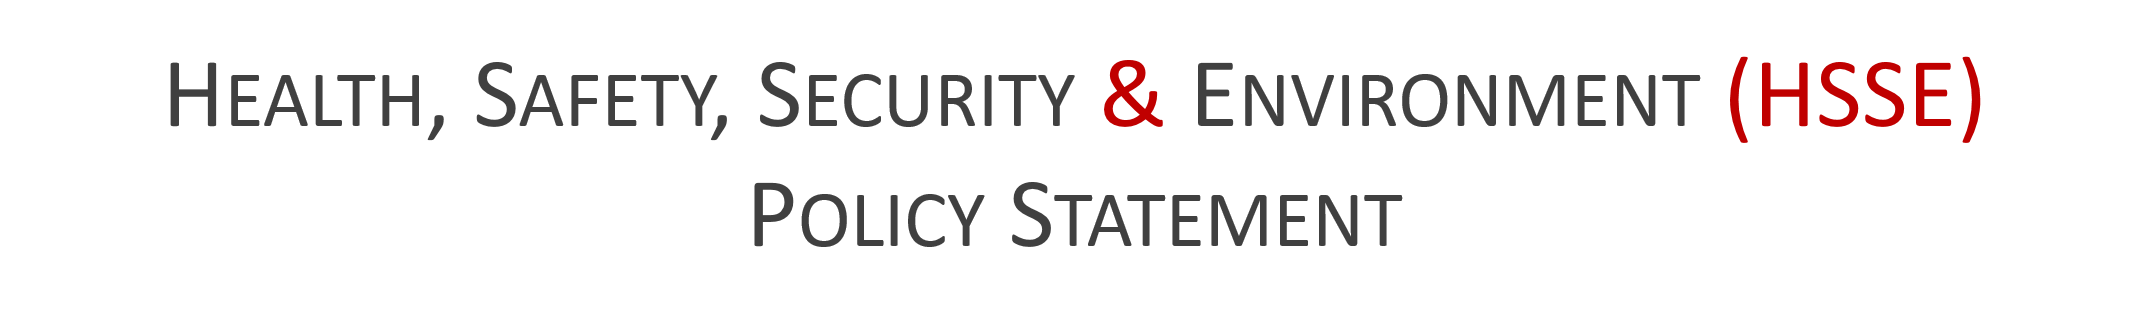 HEALTH, SAFETY, SECURITY AND ENVIRONMENT POLICY STATEMENT